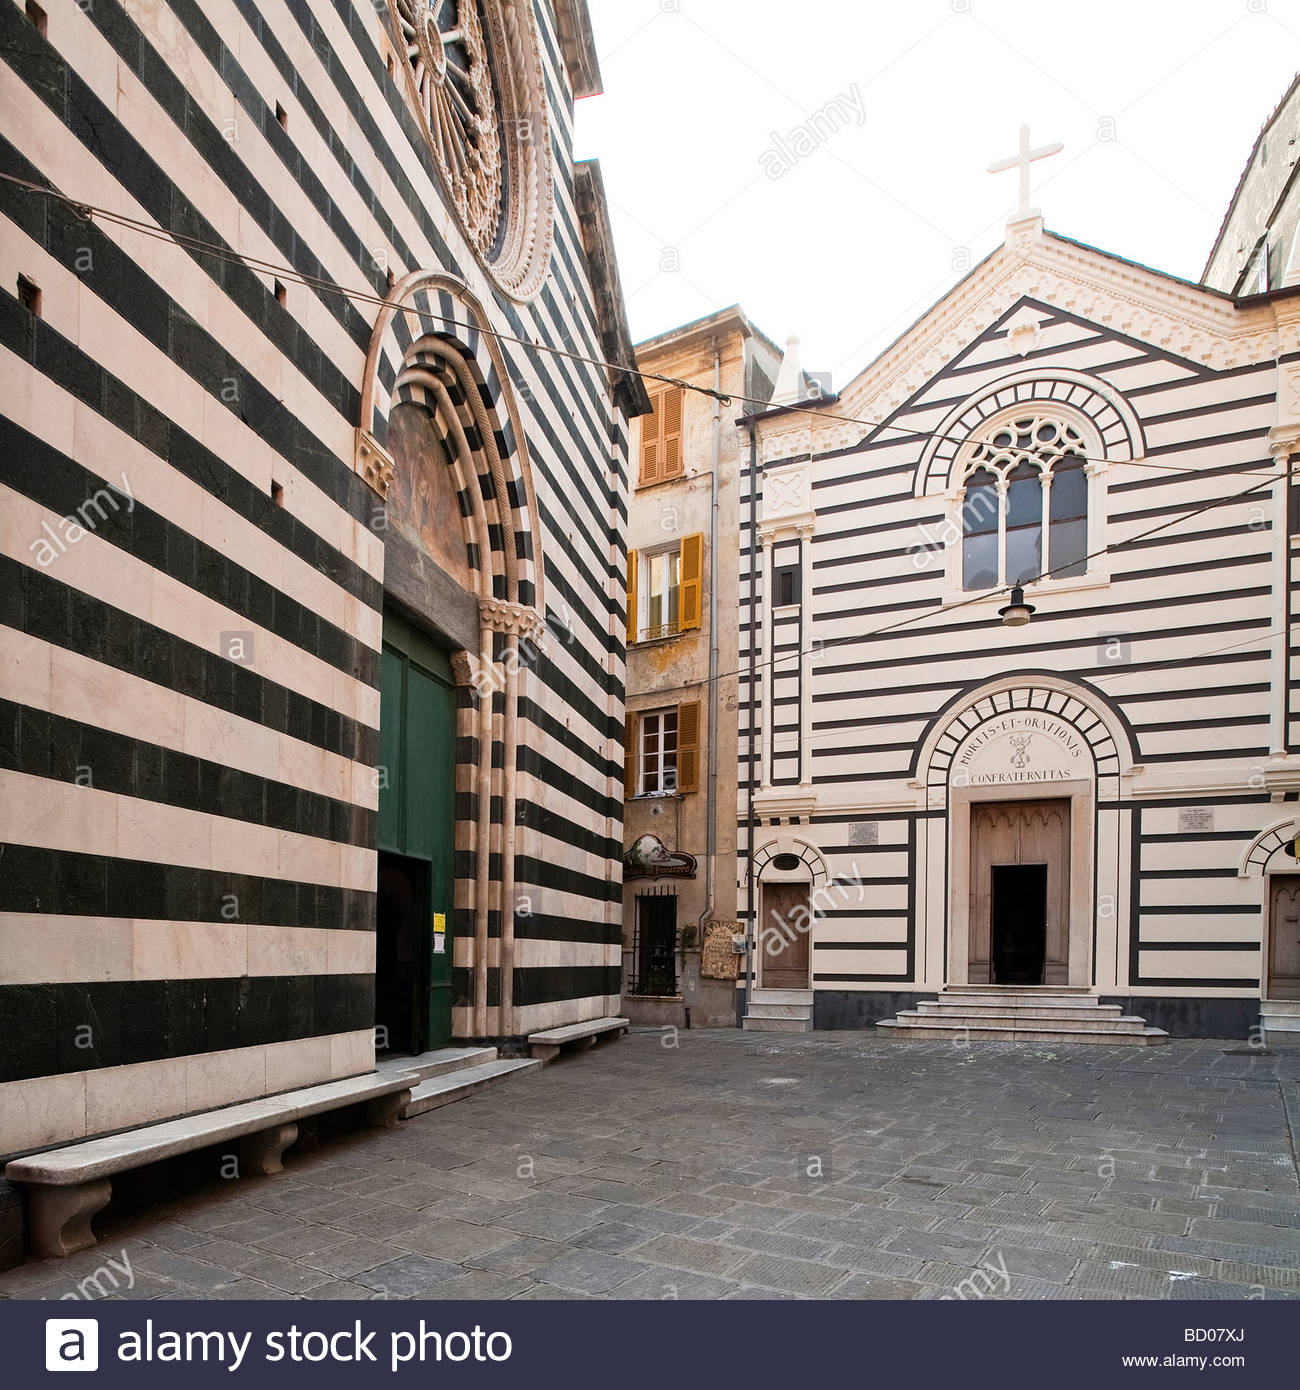 san giovanni battista church, monterosso, liguria, italy Stock Photo